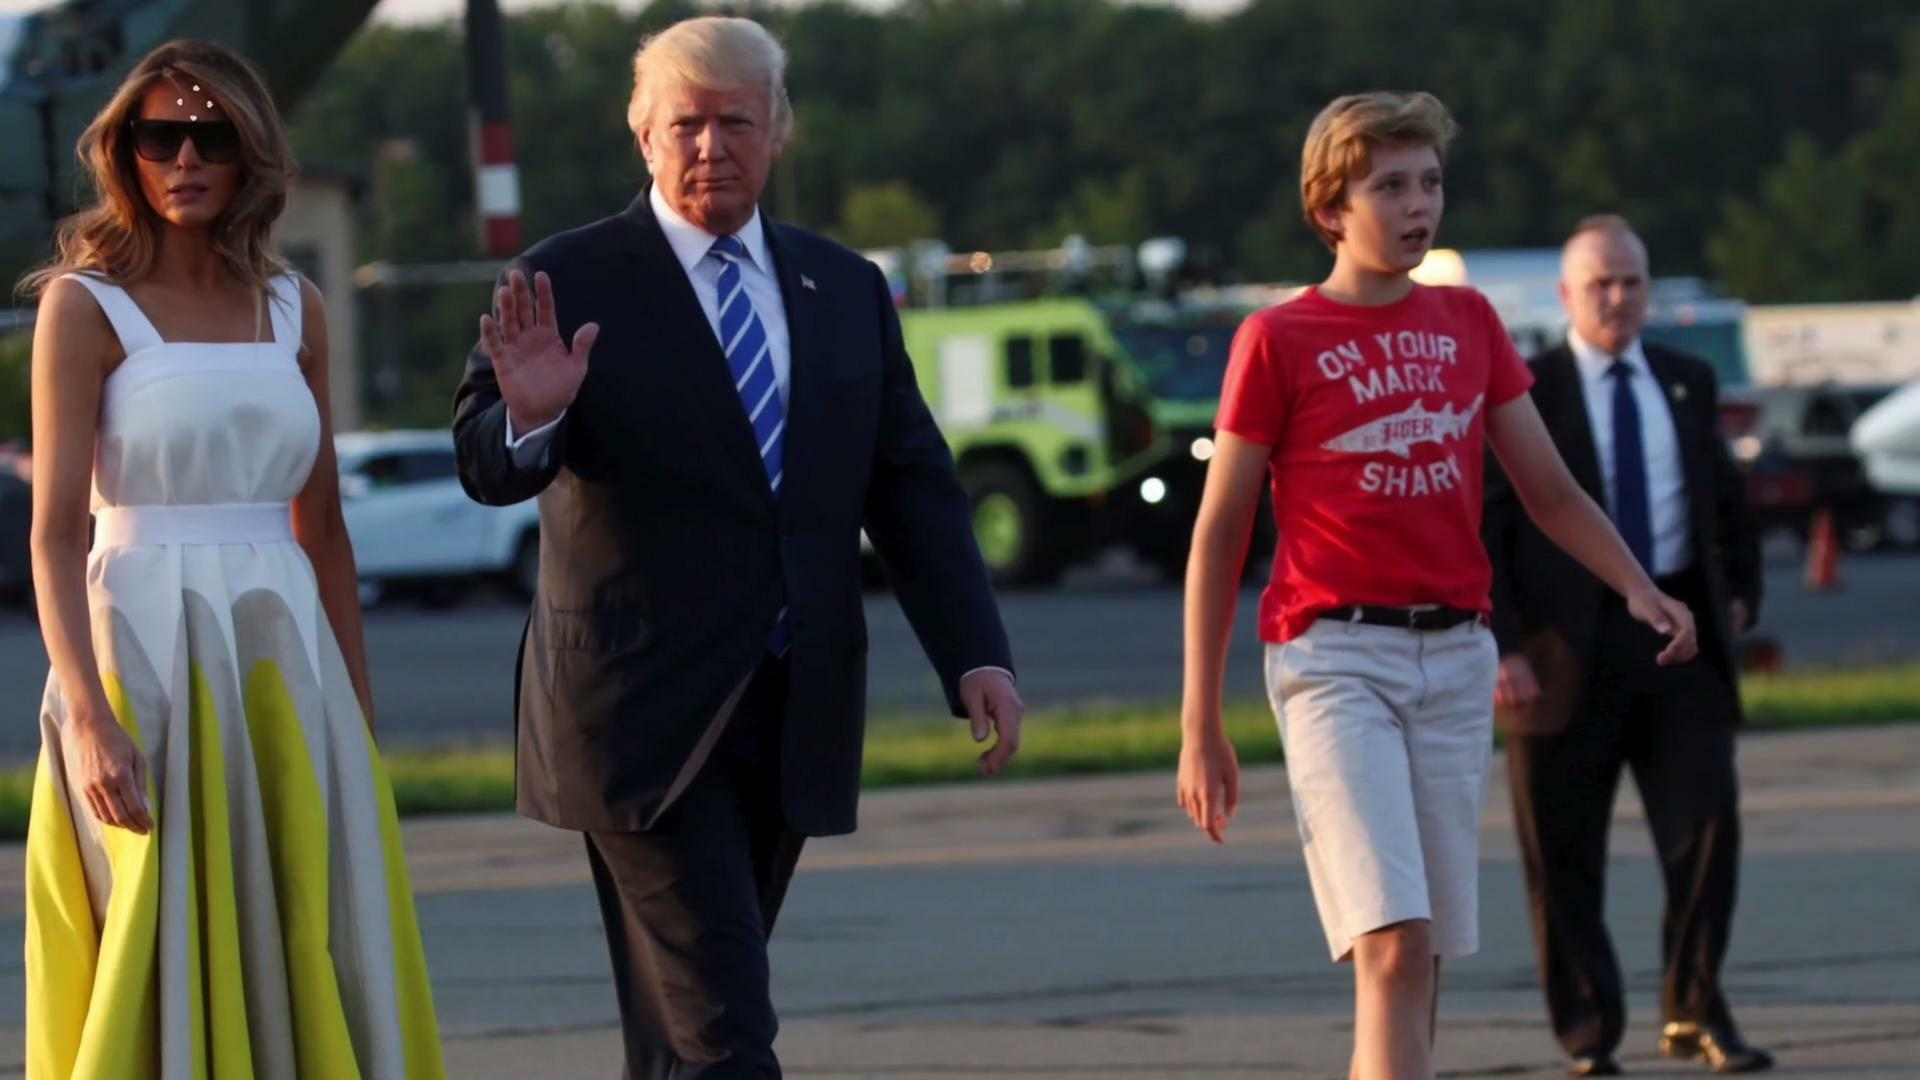 After Website Blasts Barron's Clothes Chelsea Goes to Bat